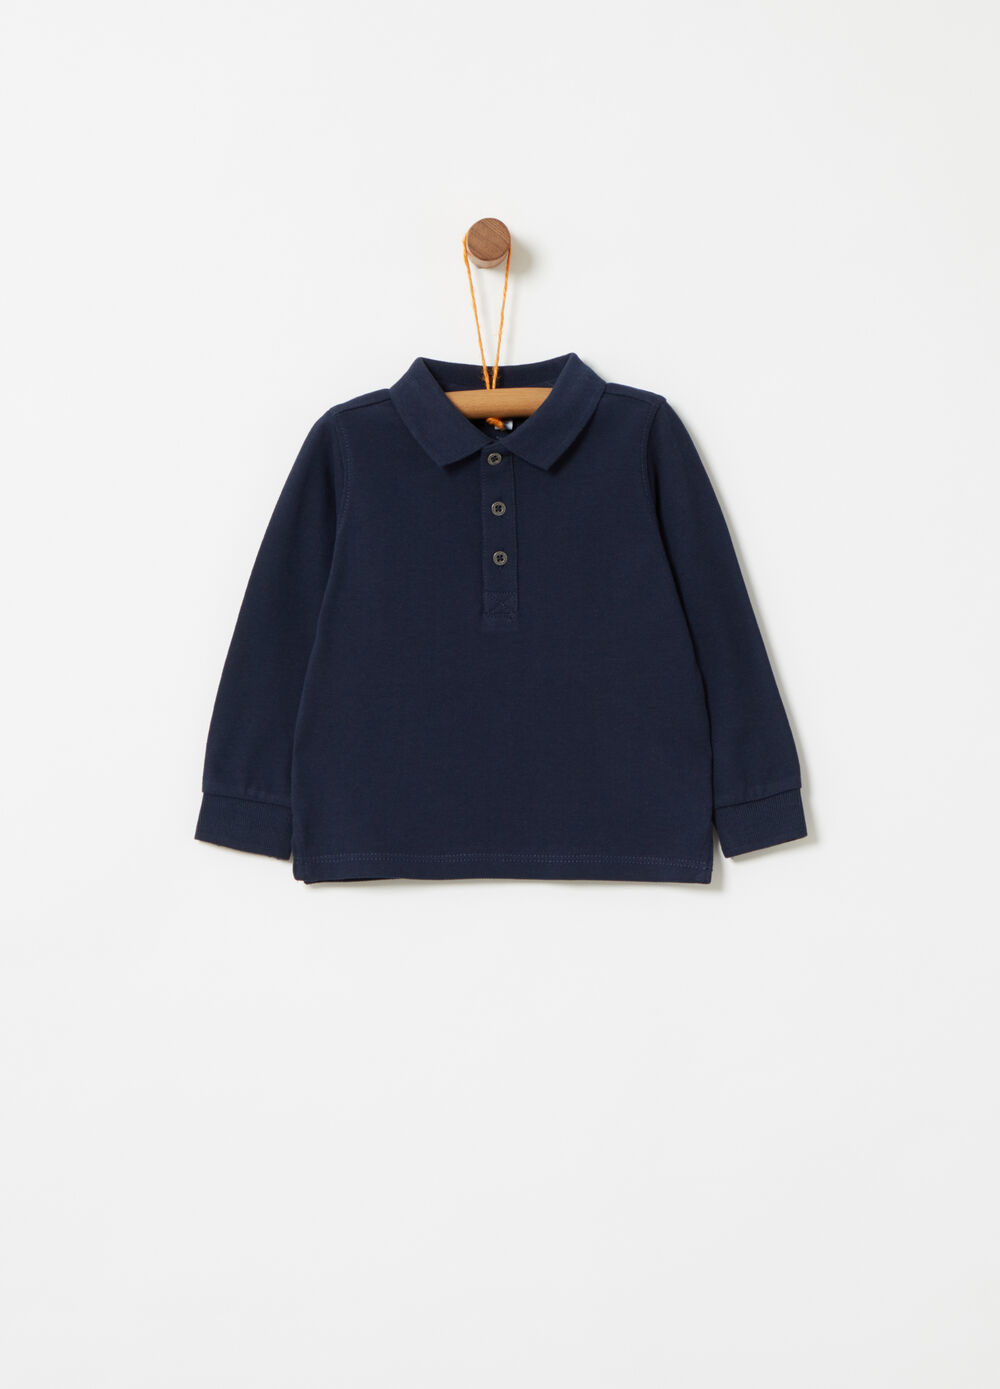 Piquet polo shirt with ribbed neckline and cuffs